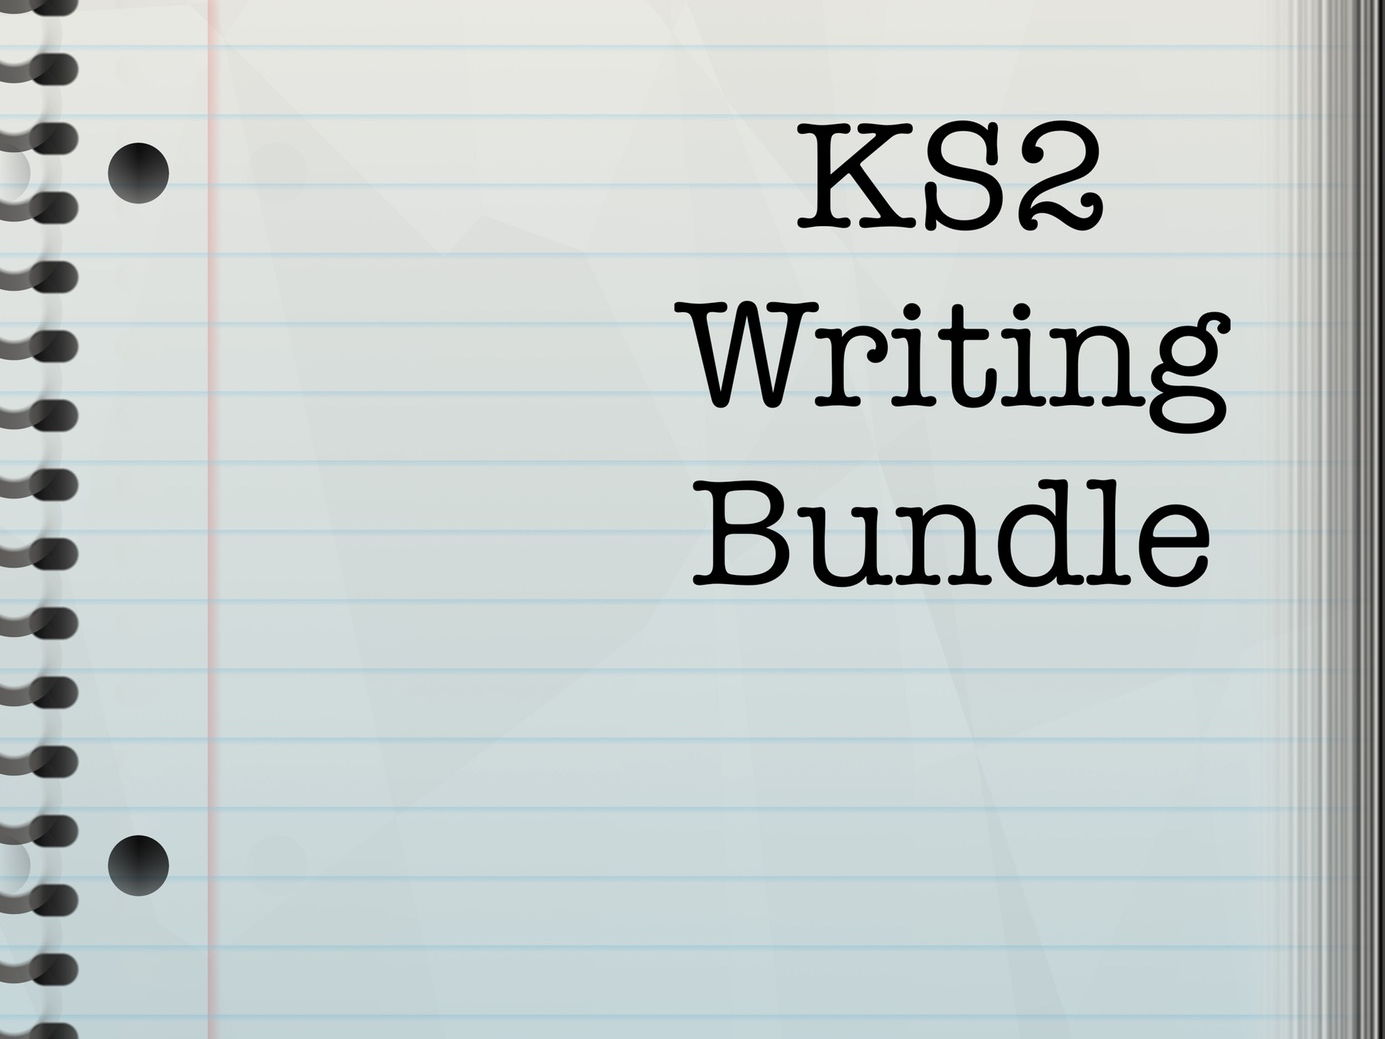 KS2 Writing Bundle